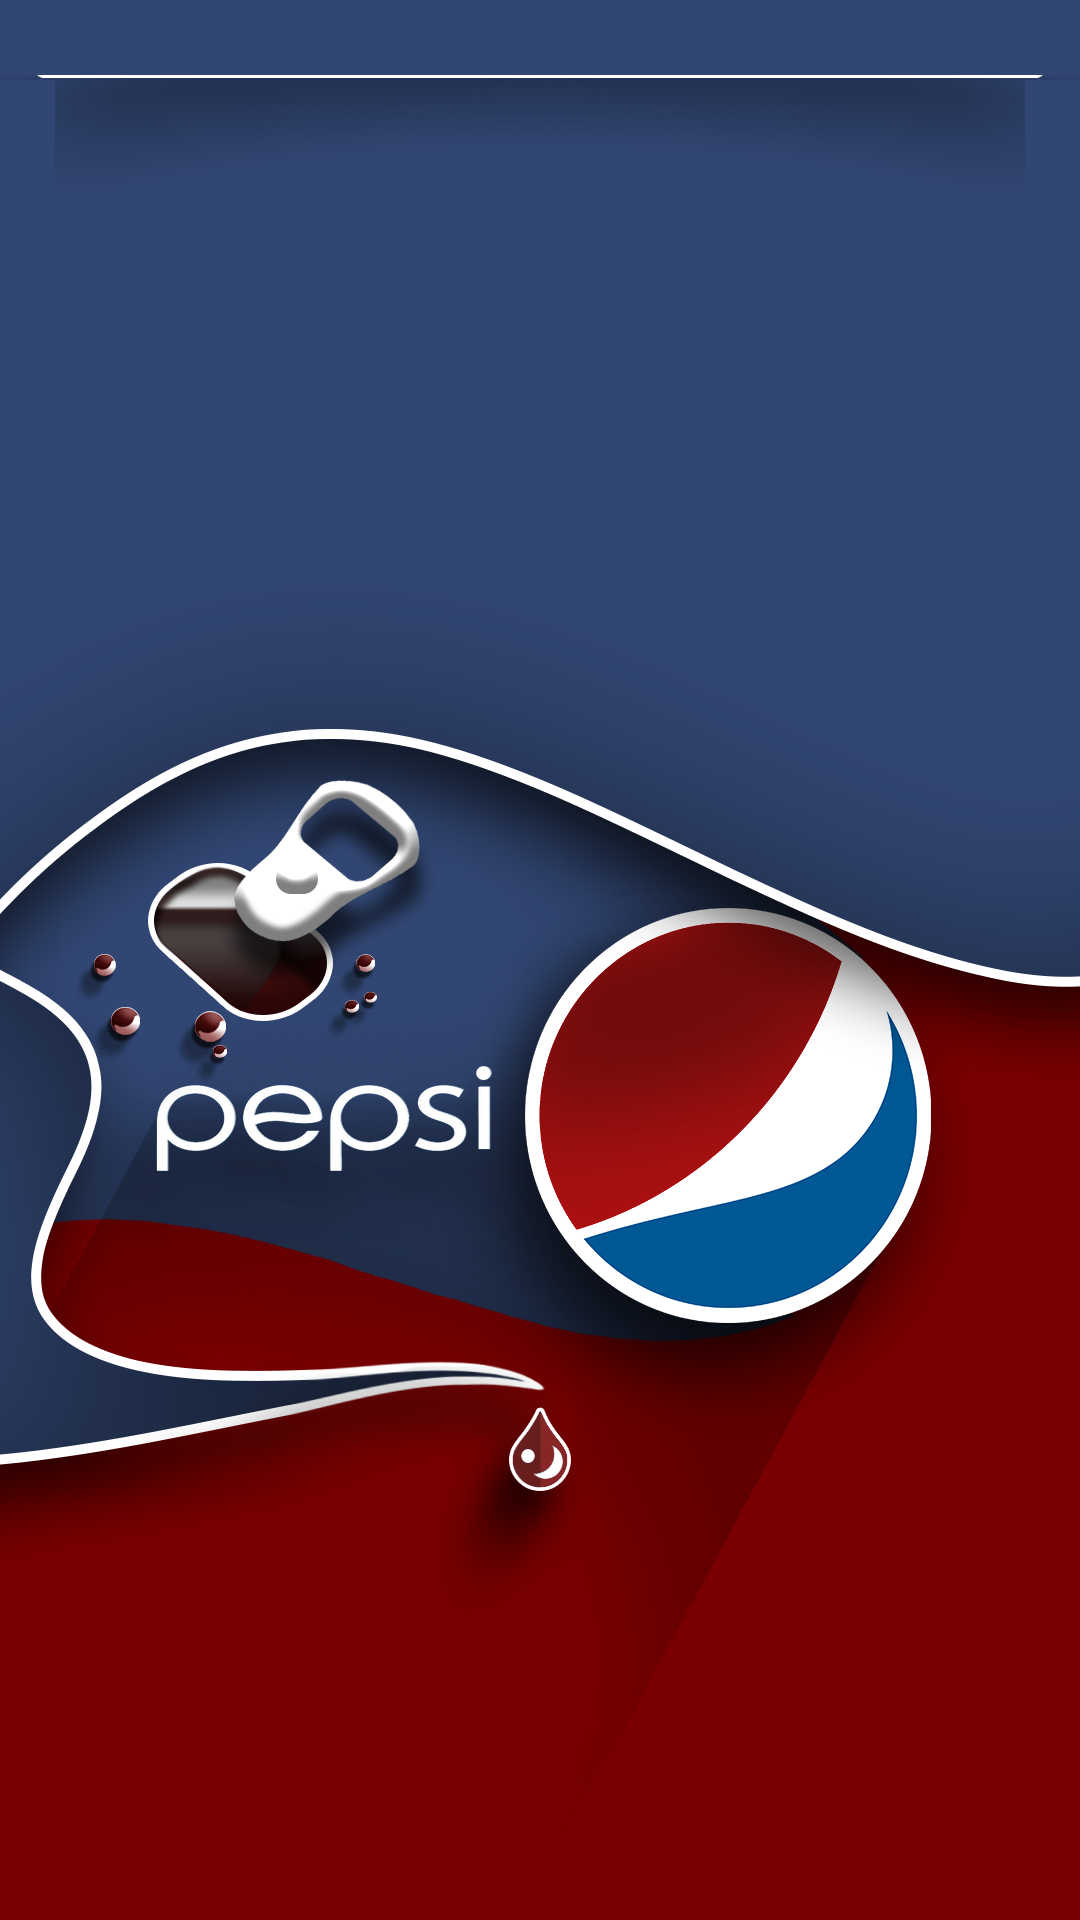 Pepsi Open Tab Wallpaper Pepsi Pepsi Logo Android Wallpaper